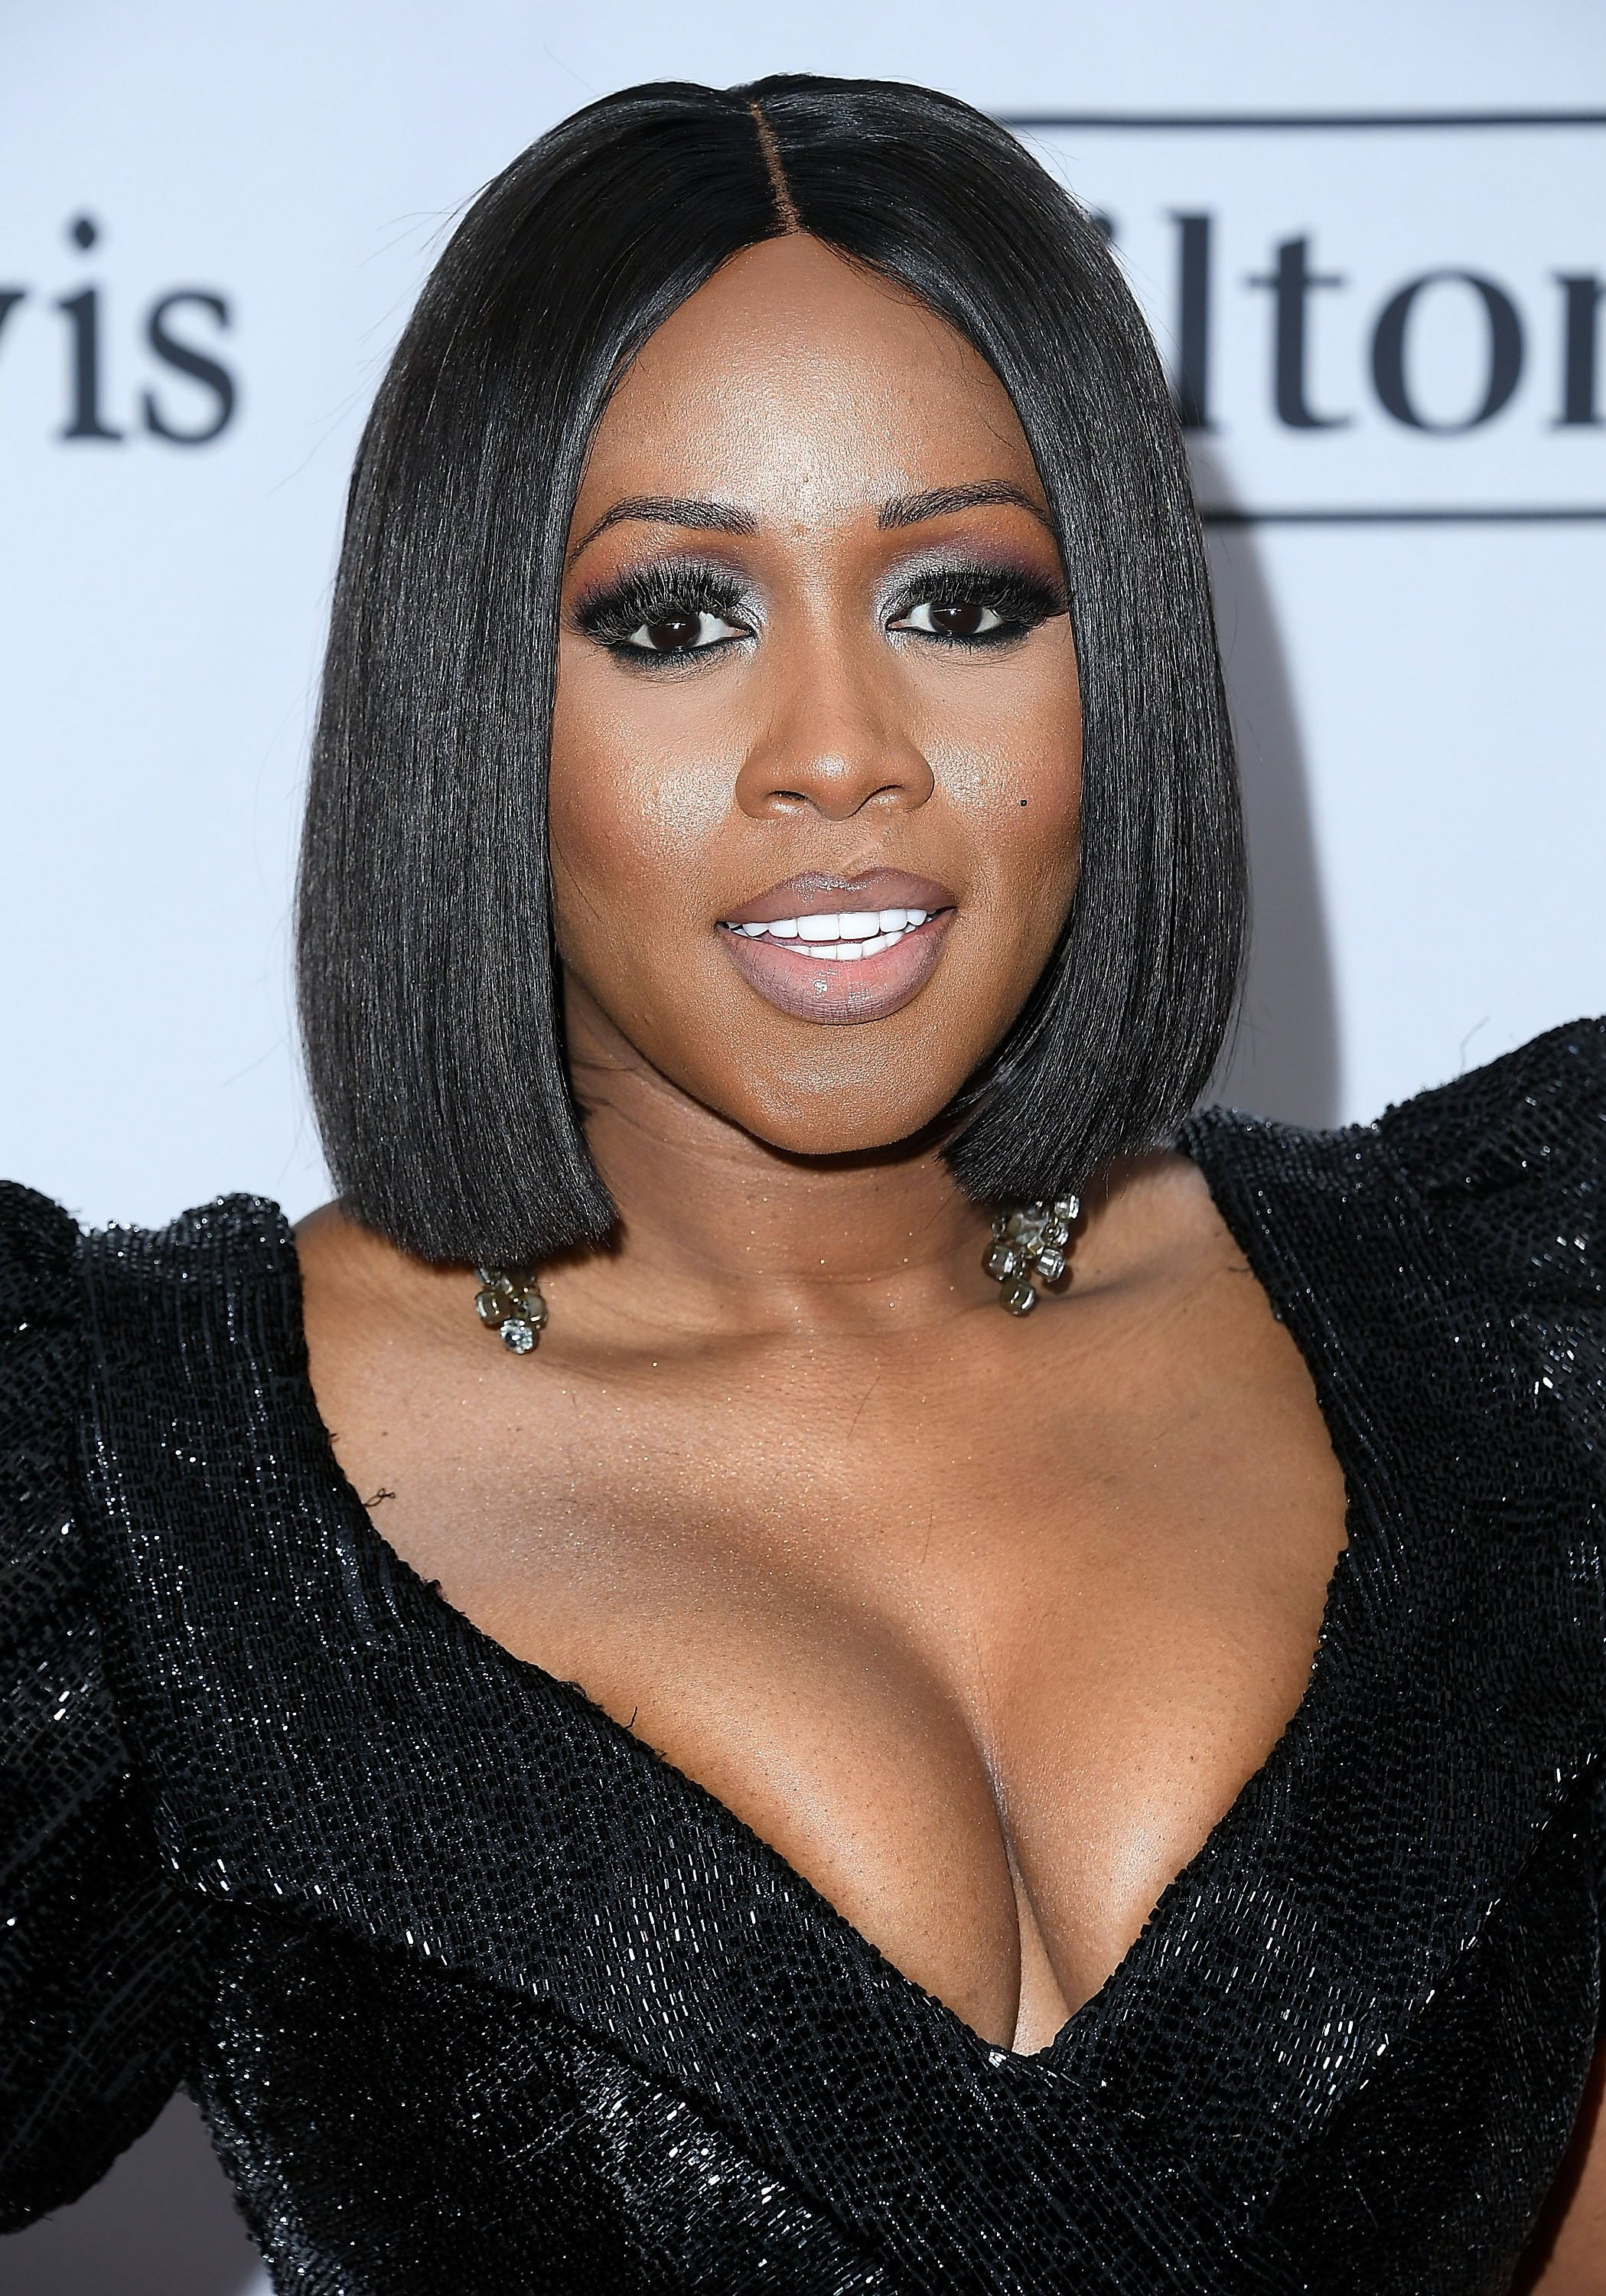 Remy Ma at the Clive Davis and Recording Academy Pre-Grammy Gala on January 27, 2018 in New York City.| Source: Getty Images